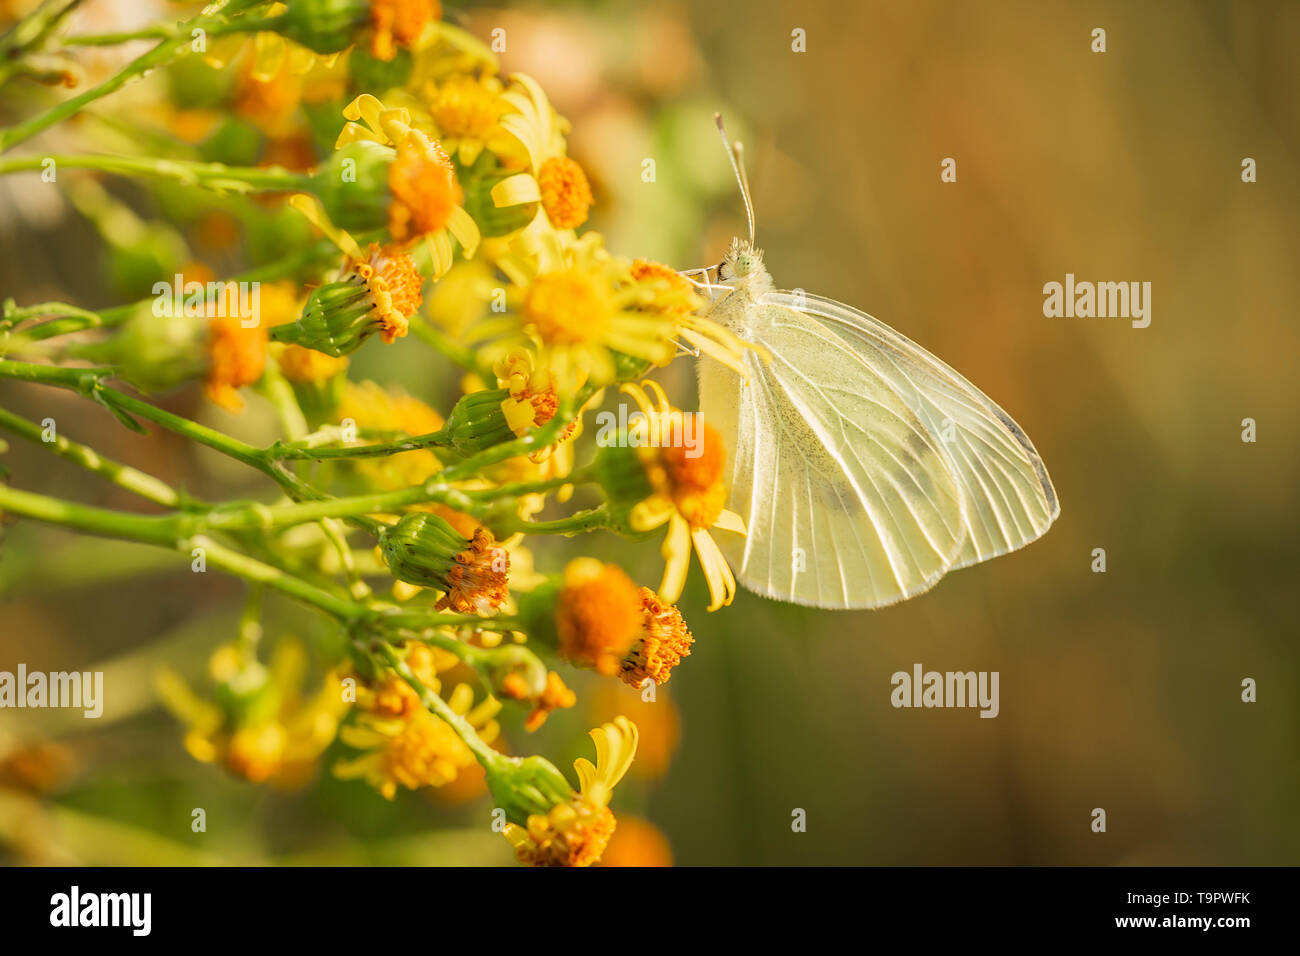 Closeup side view of a Pieris brassicae, the large white or cabbage butterfly pollinating on yellow ragwort flowers Jacobaea vulgaris - Stock Image